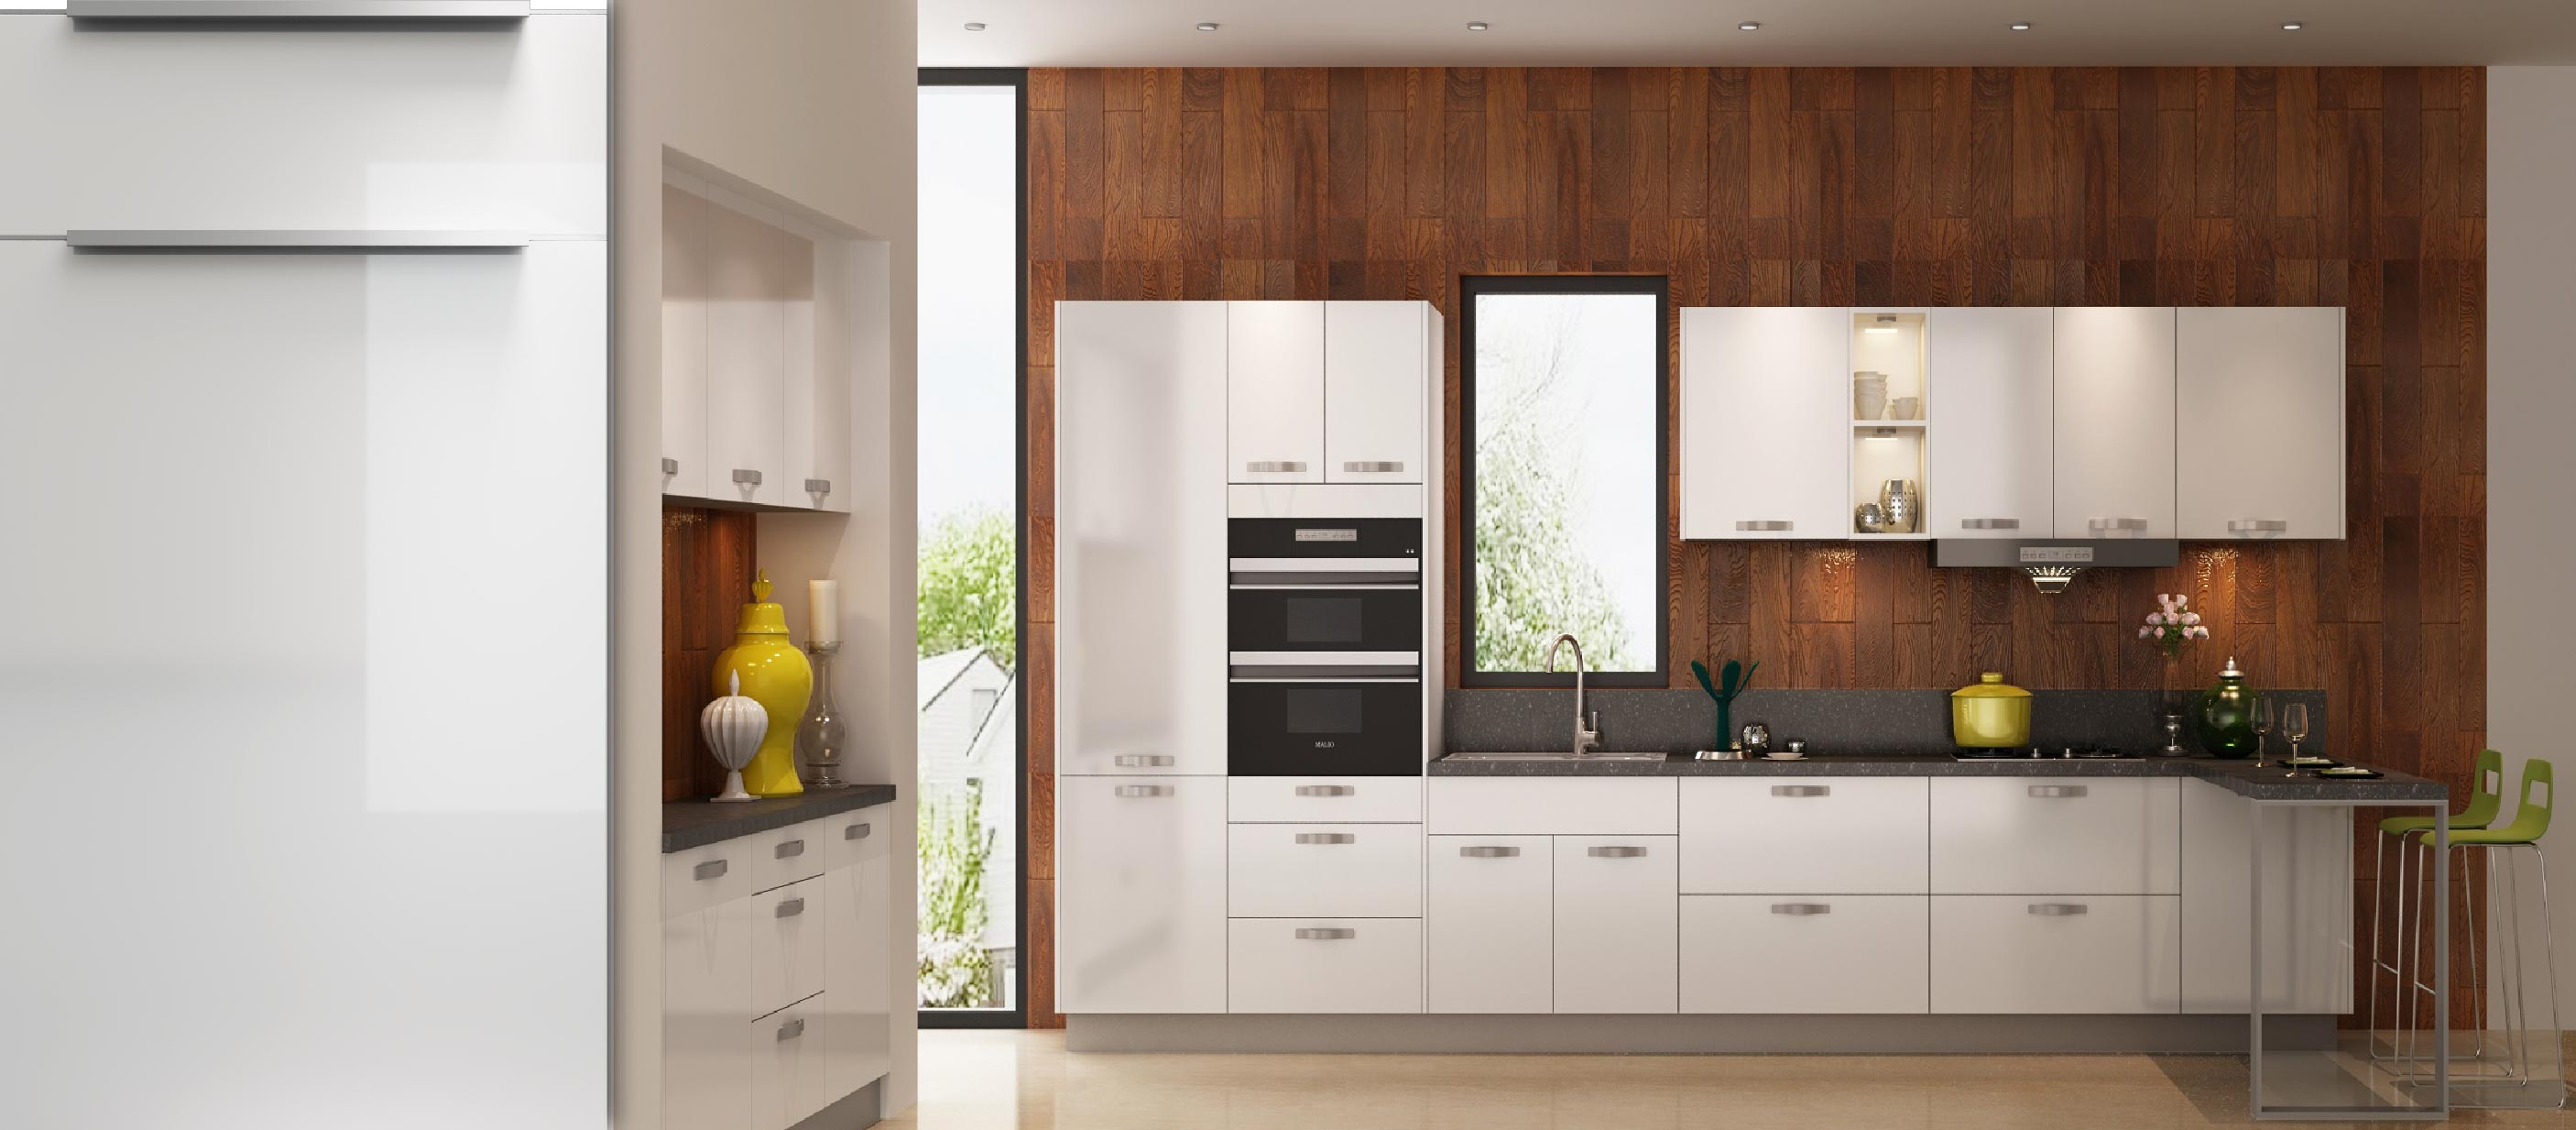 Kitchen Cabinets And Bathroom Design Longwood Florida